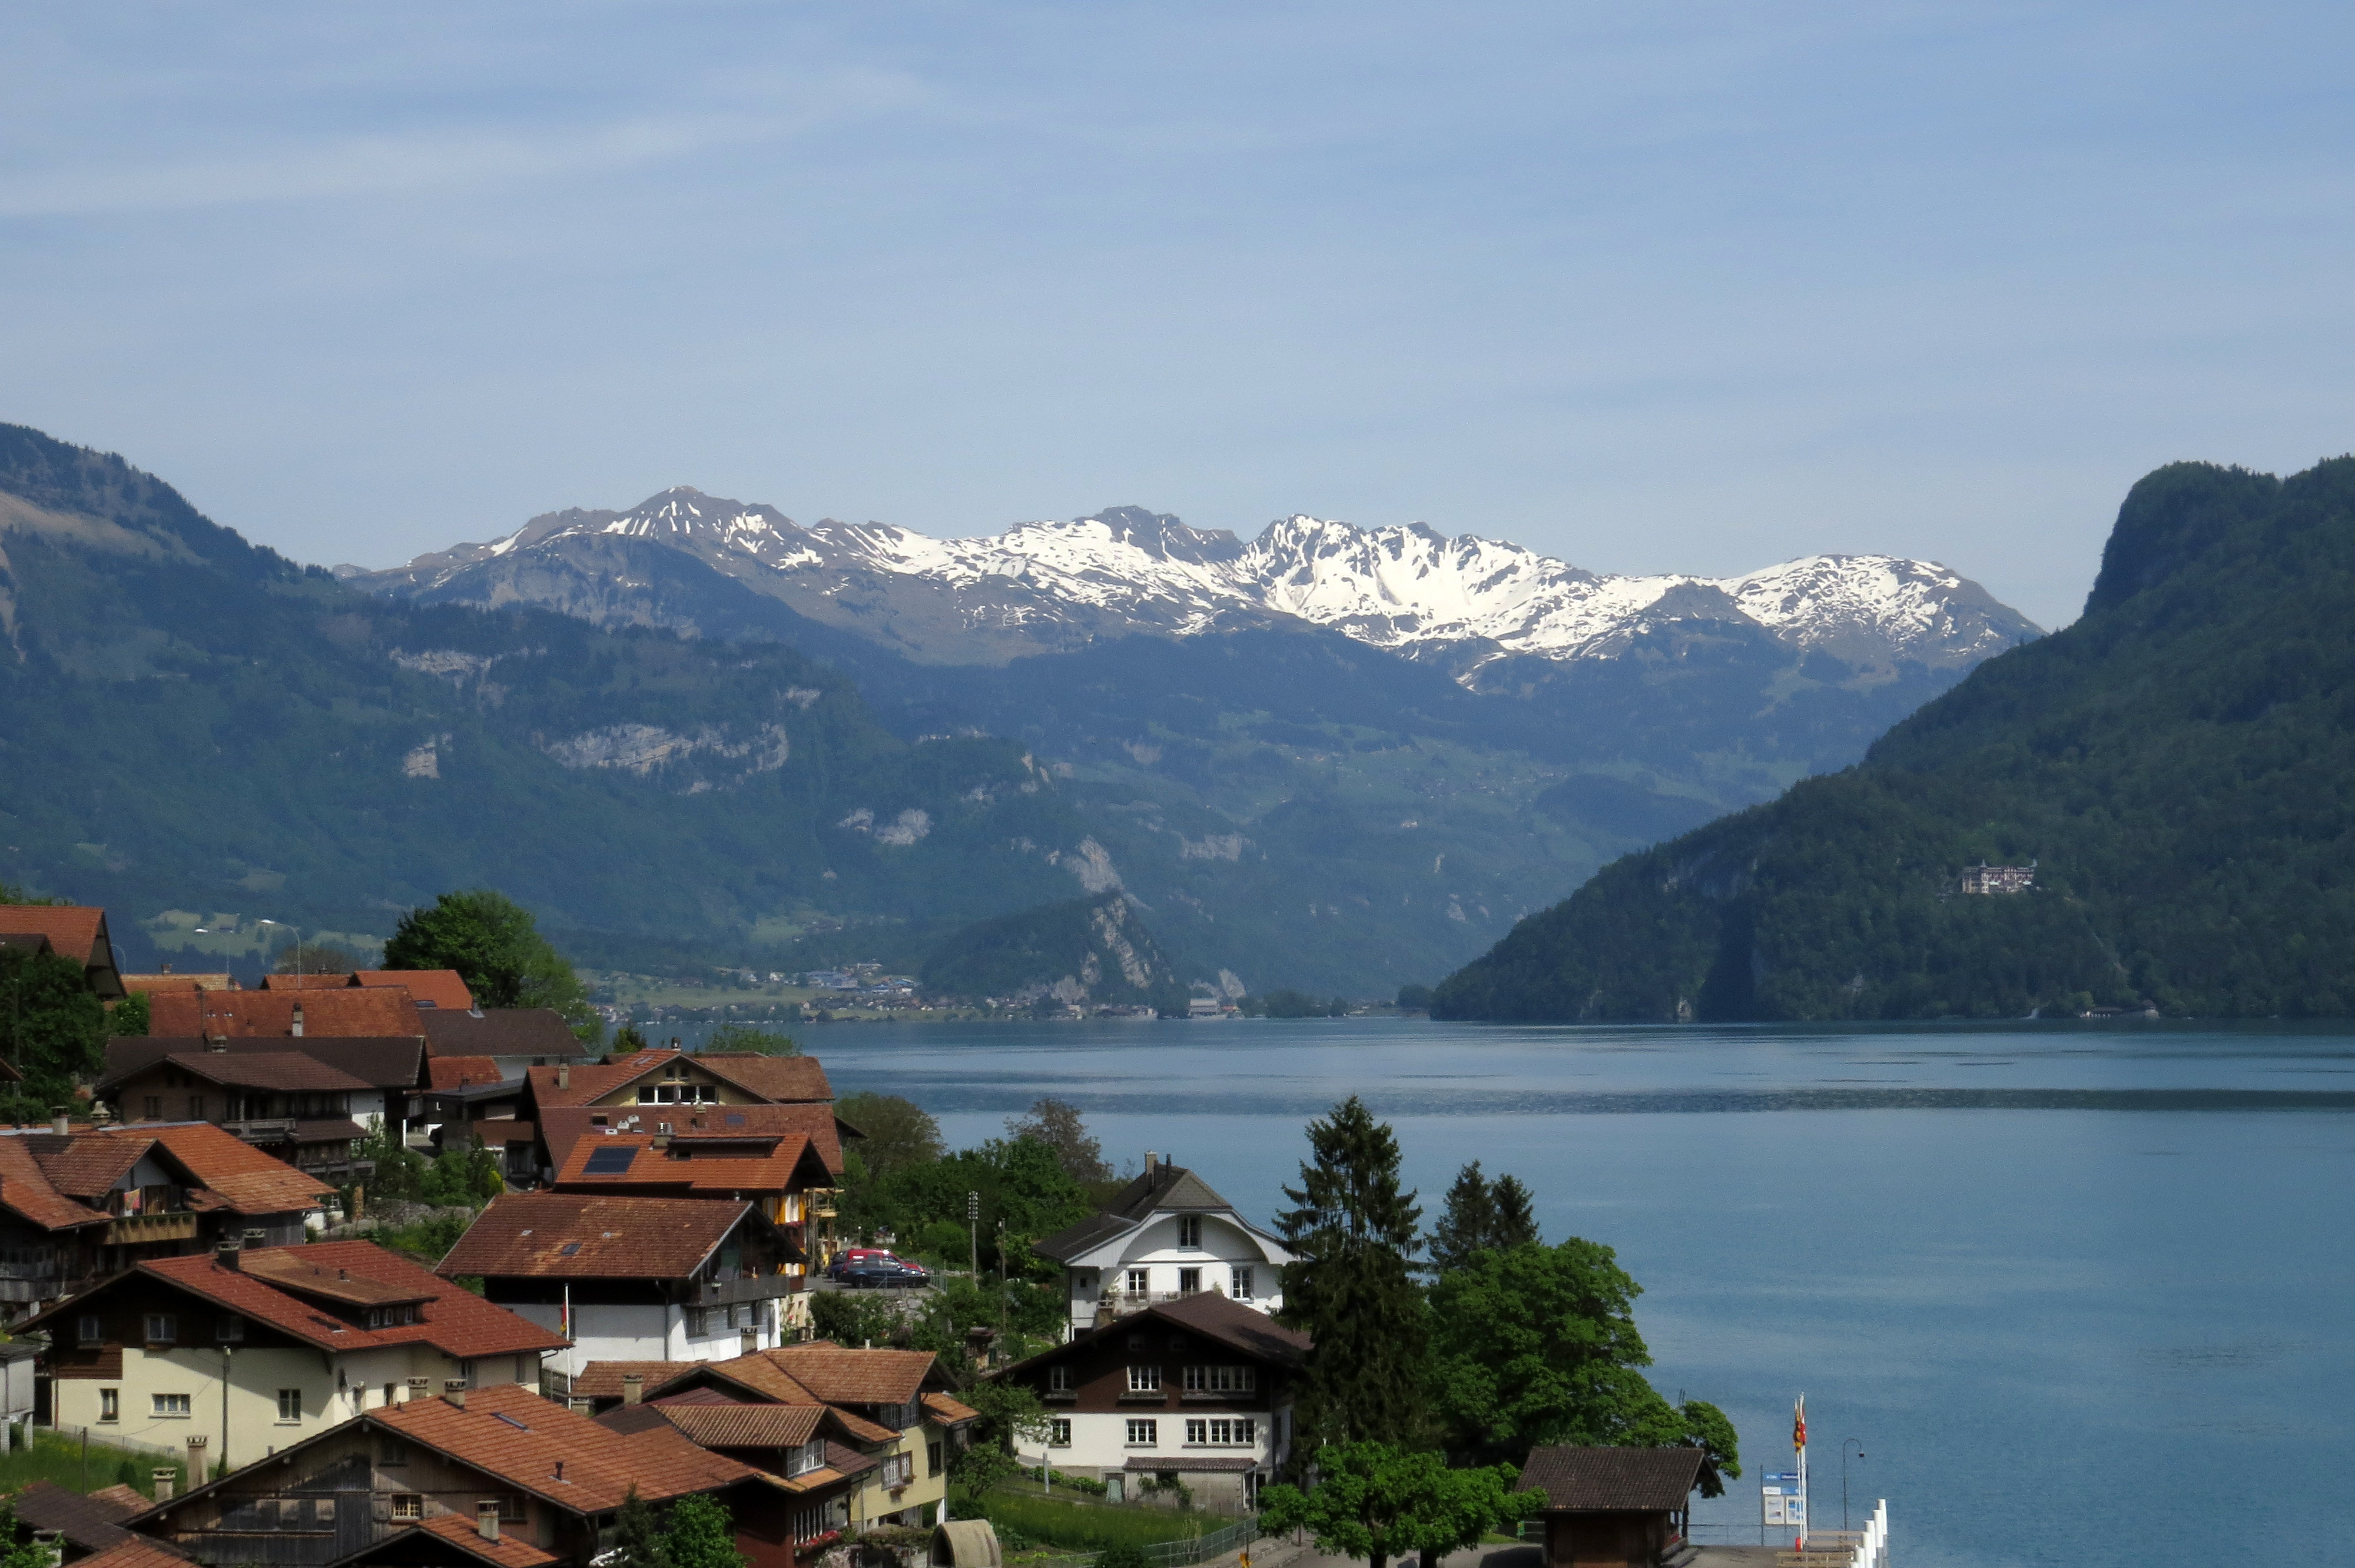 Scenic Europe Tour There Are All Kinds Of Reasons To Go On Europe Vacations